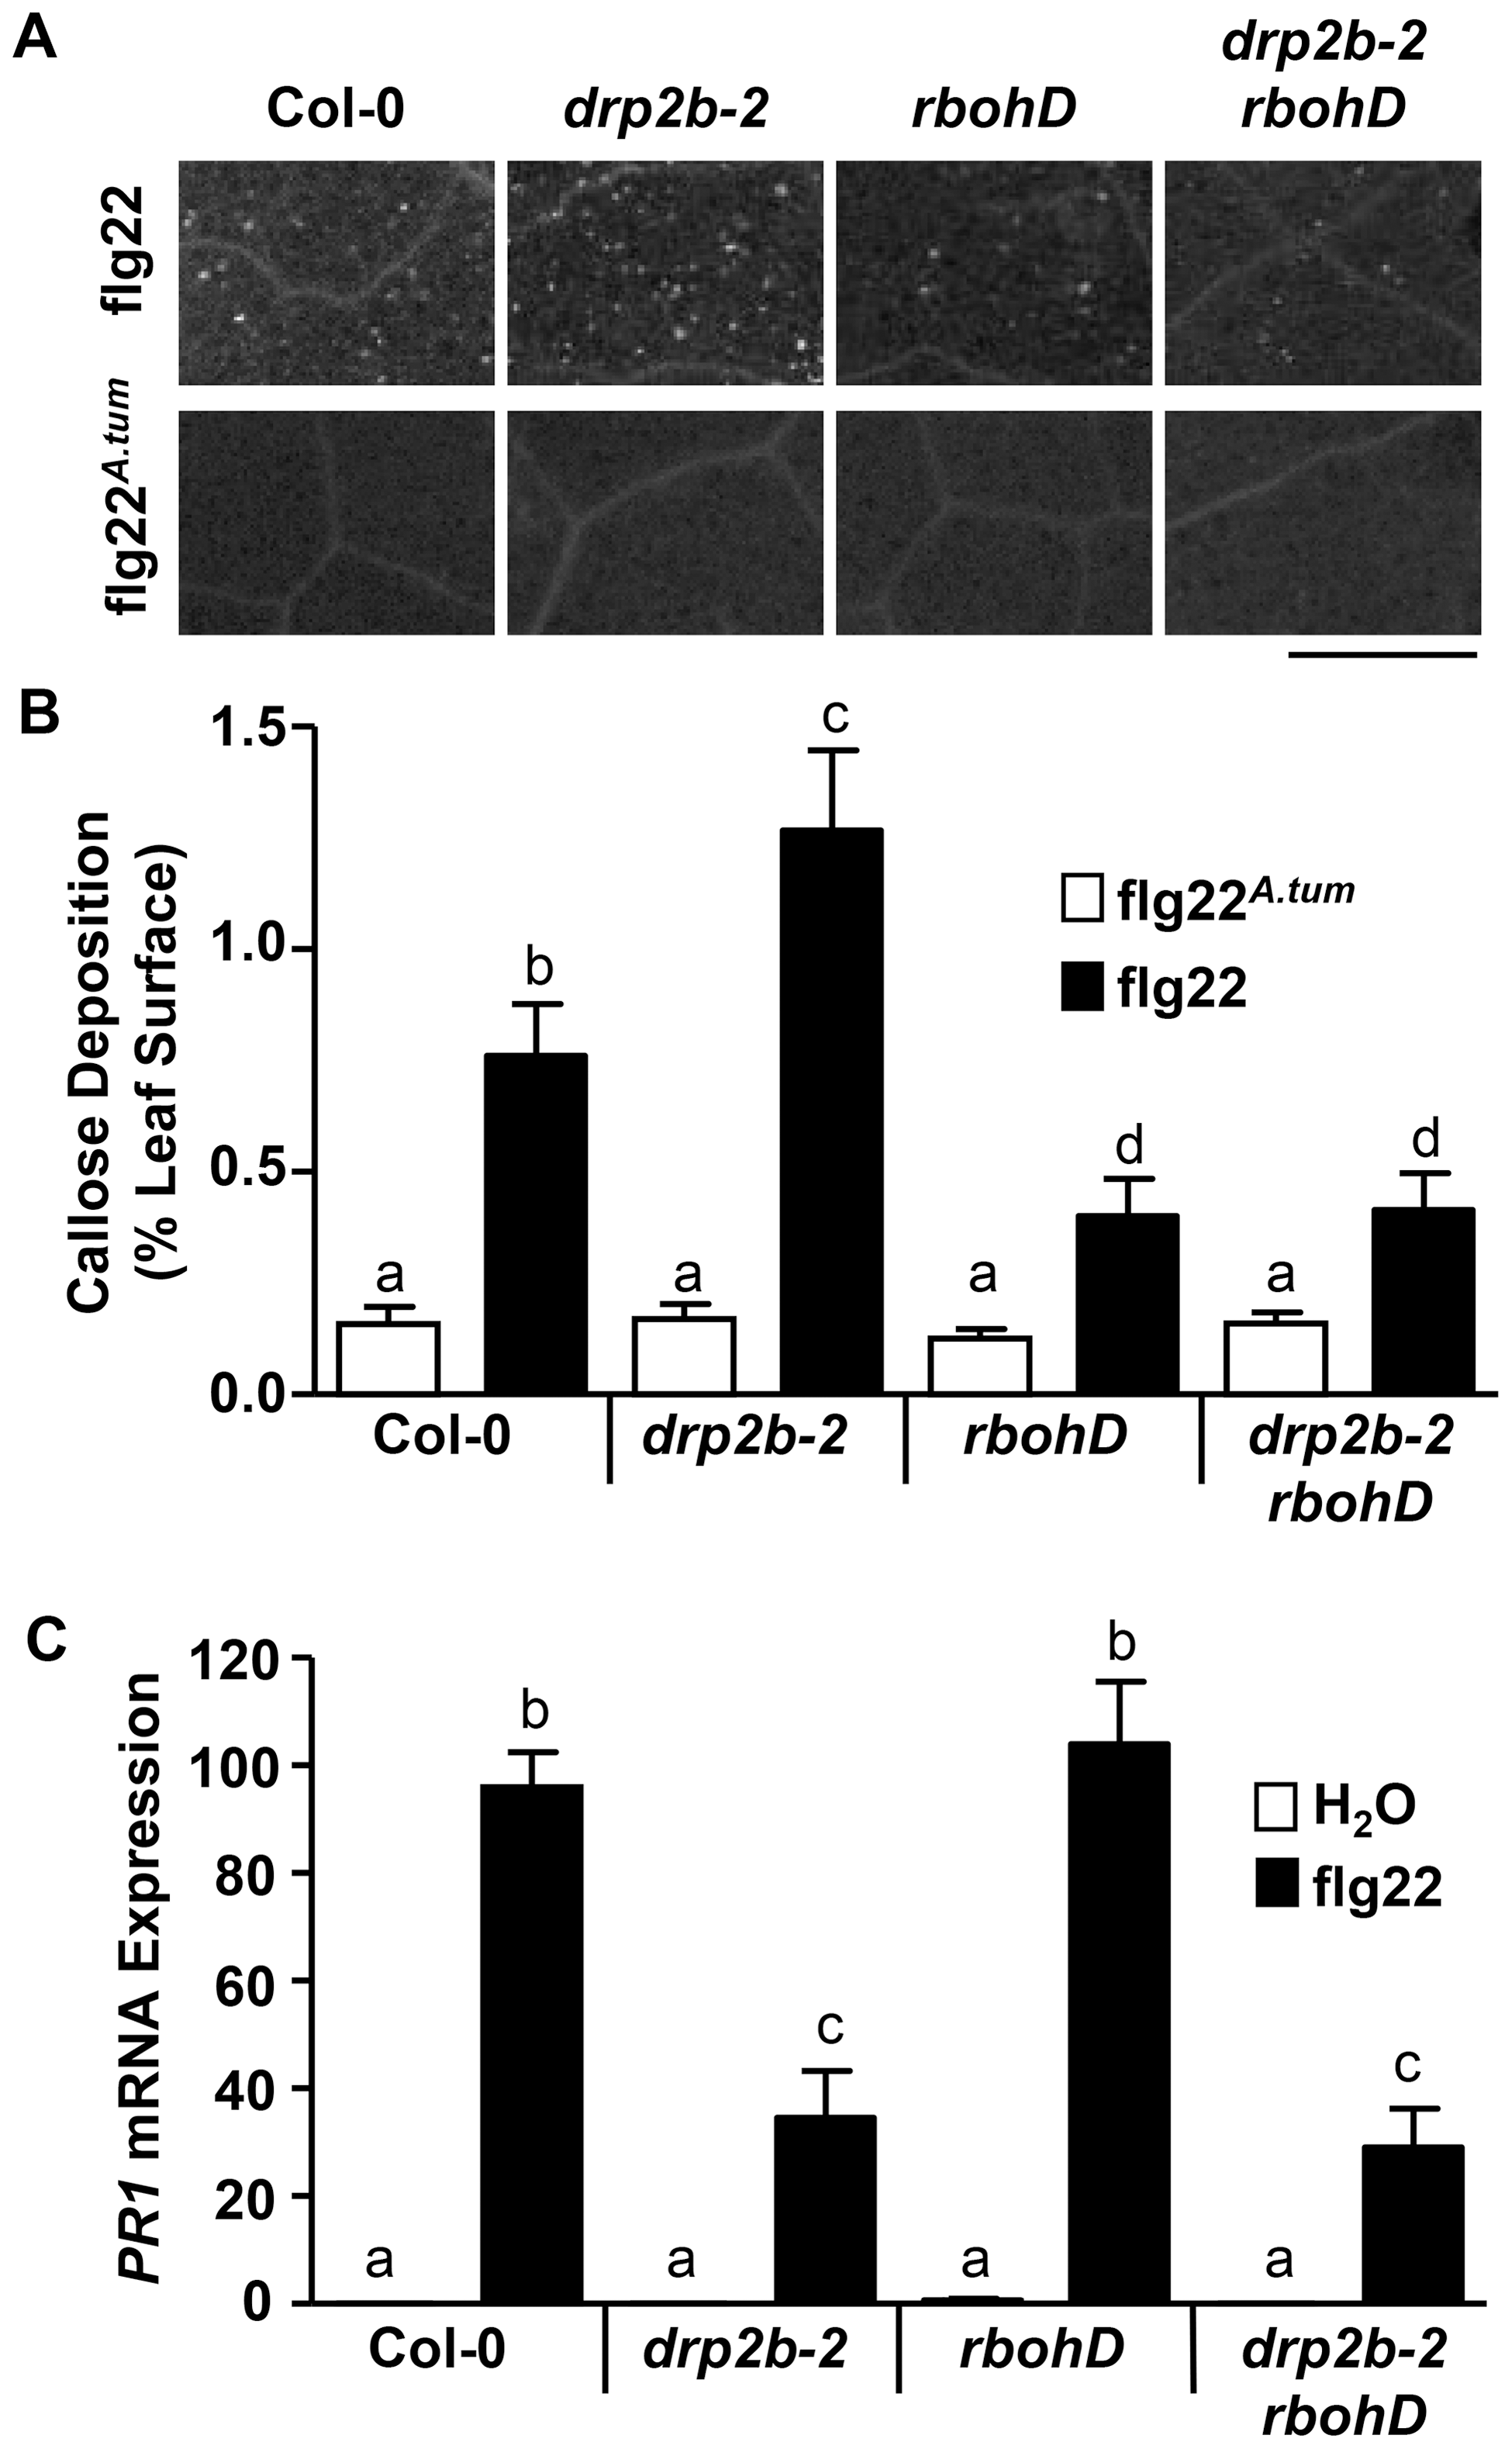 Loss of <i>DRP2B</i> affects late flg22-responses in a non-canonical manner.